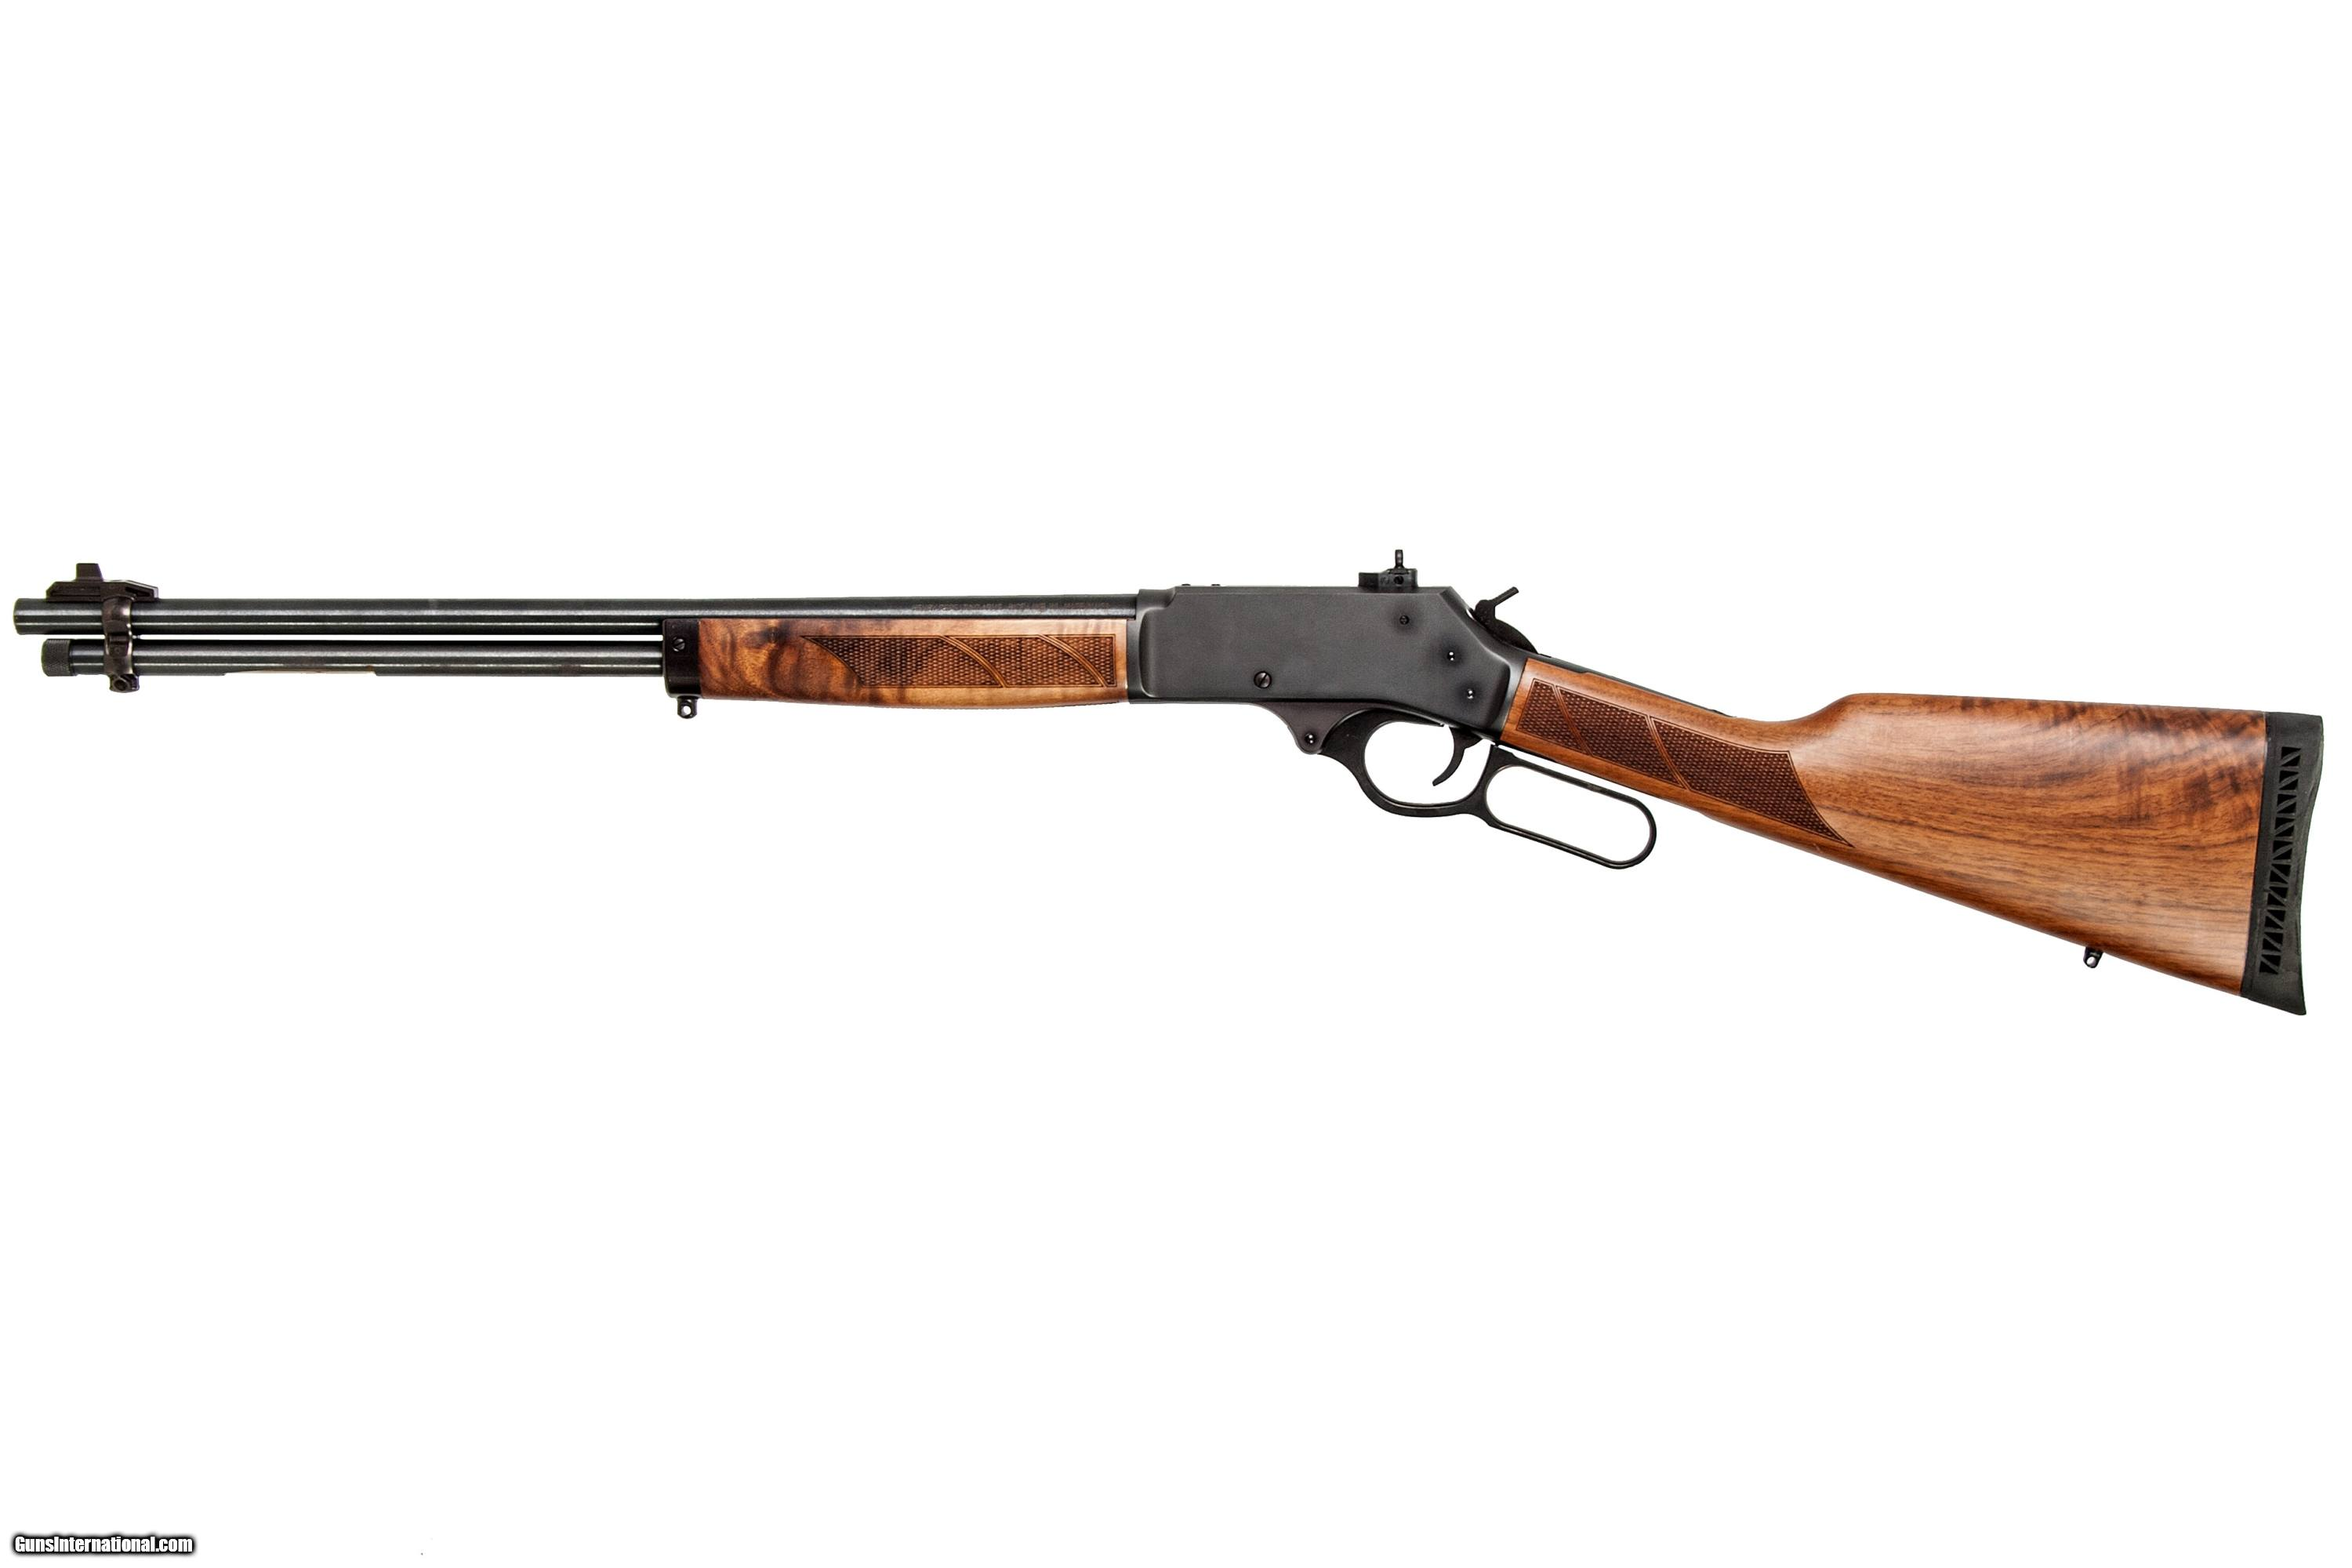 Lever Arm Of Saw : Henry repeating arms lever rifle win used gun inv